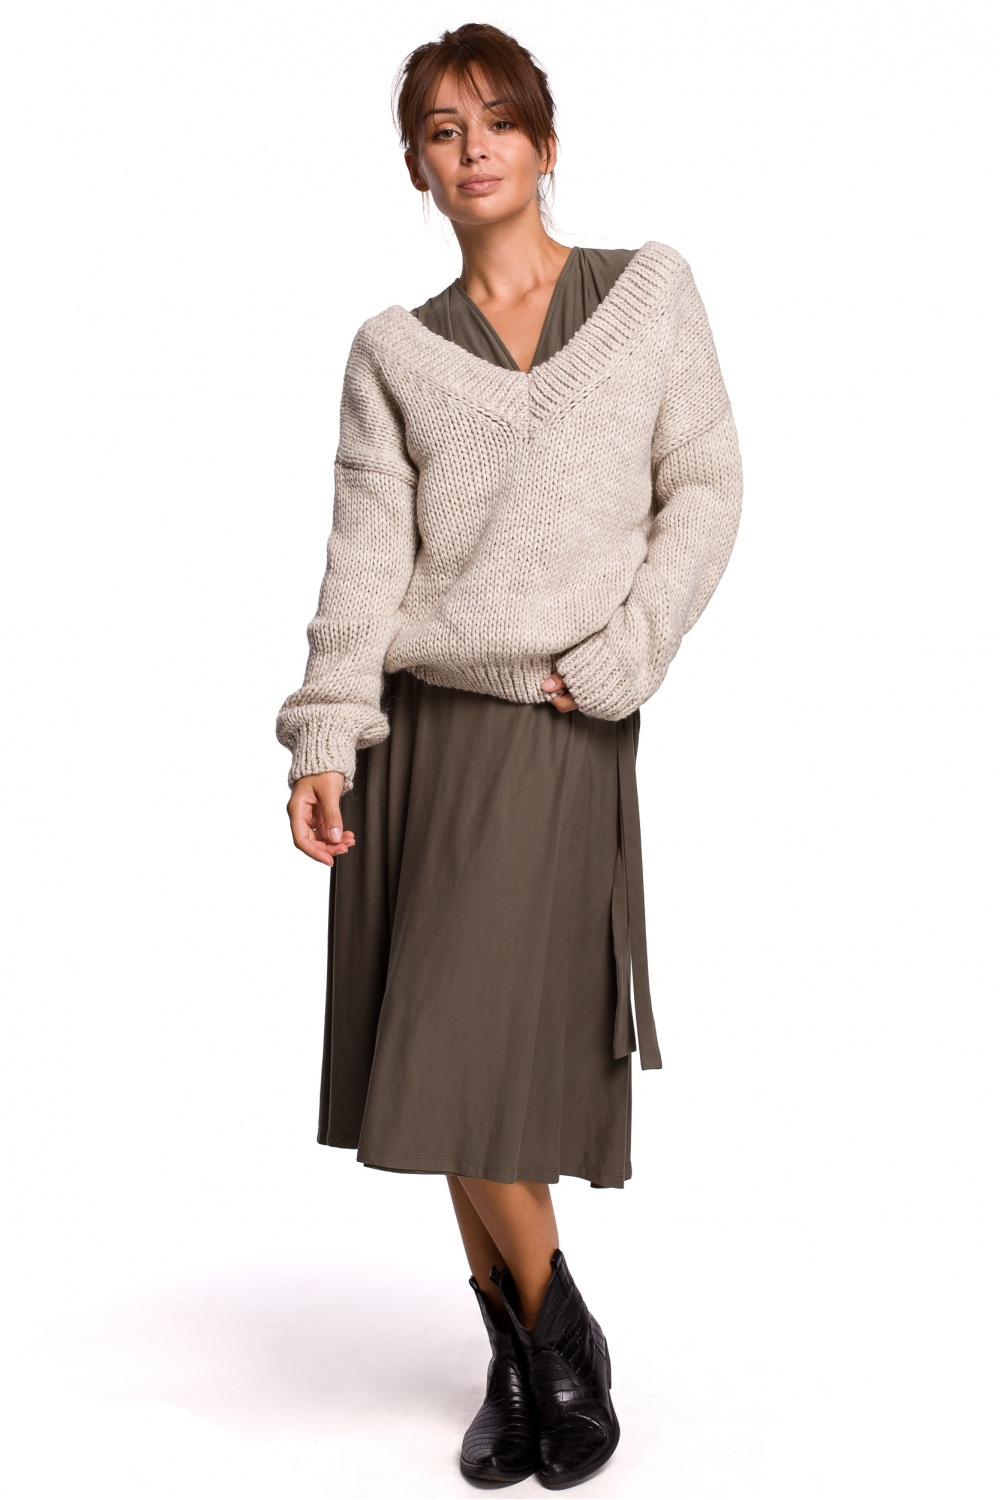 Pulover model 148279 BE Knit